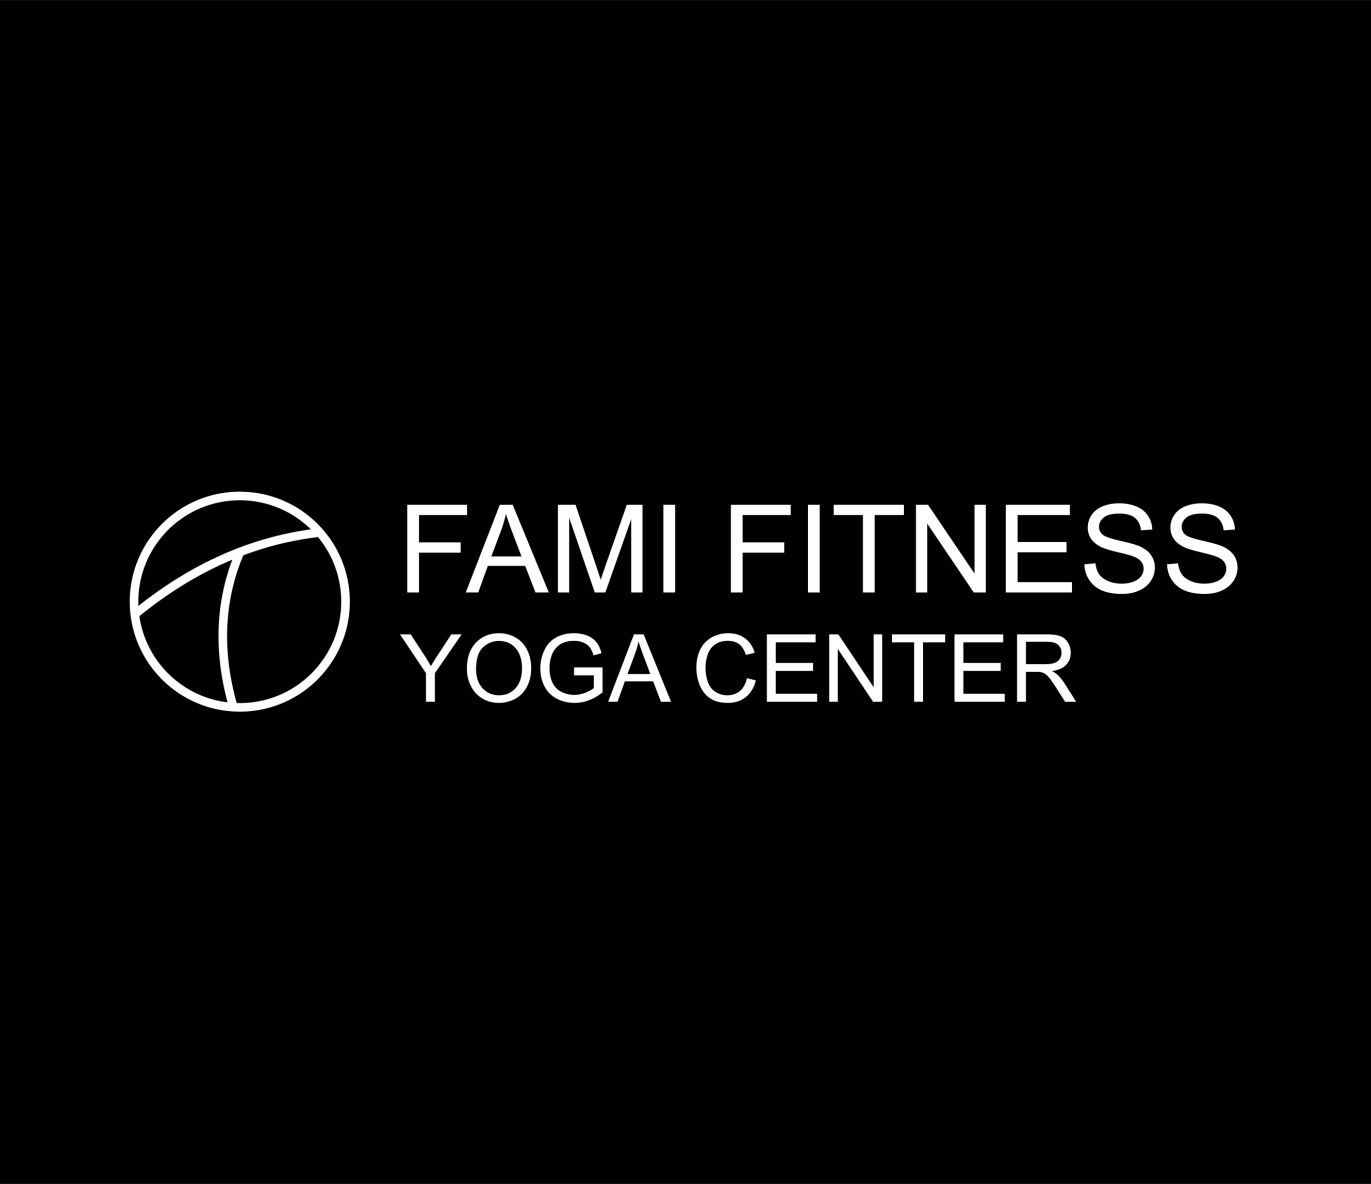 Tổ hợp thể thao Fami Fitness